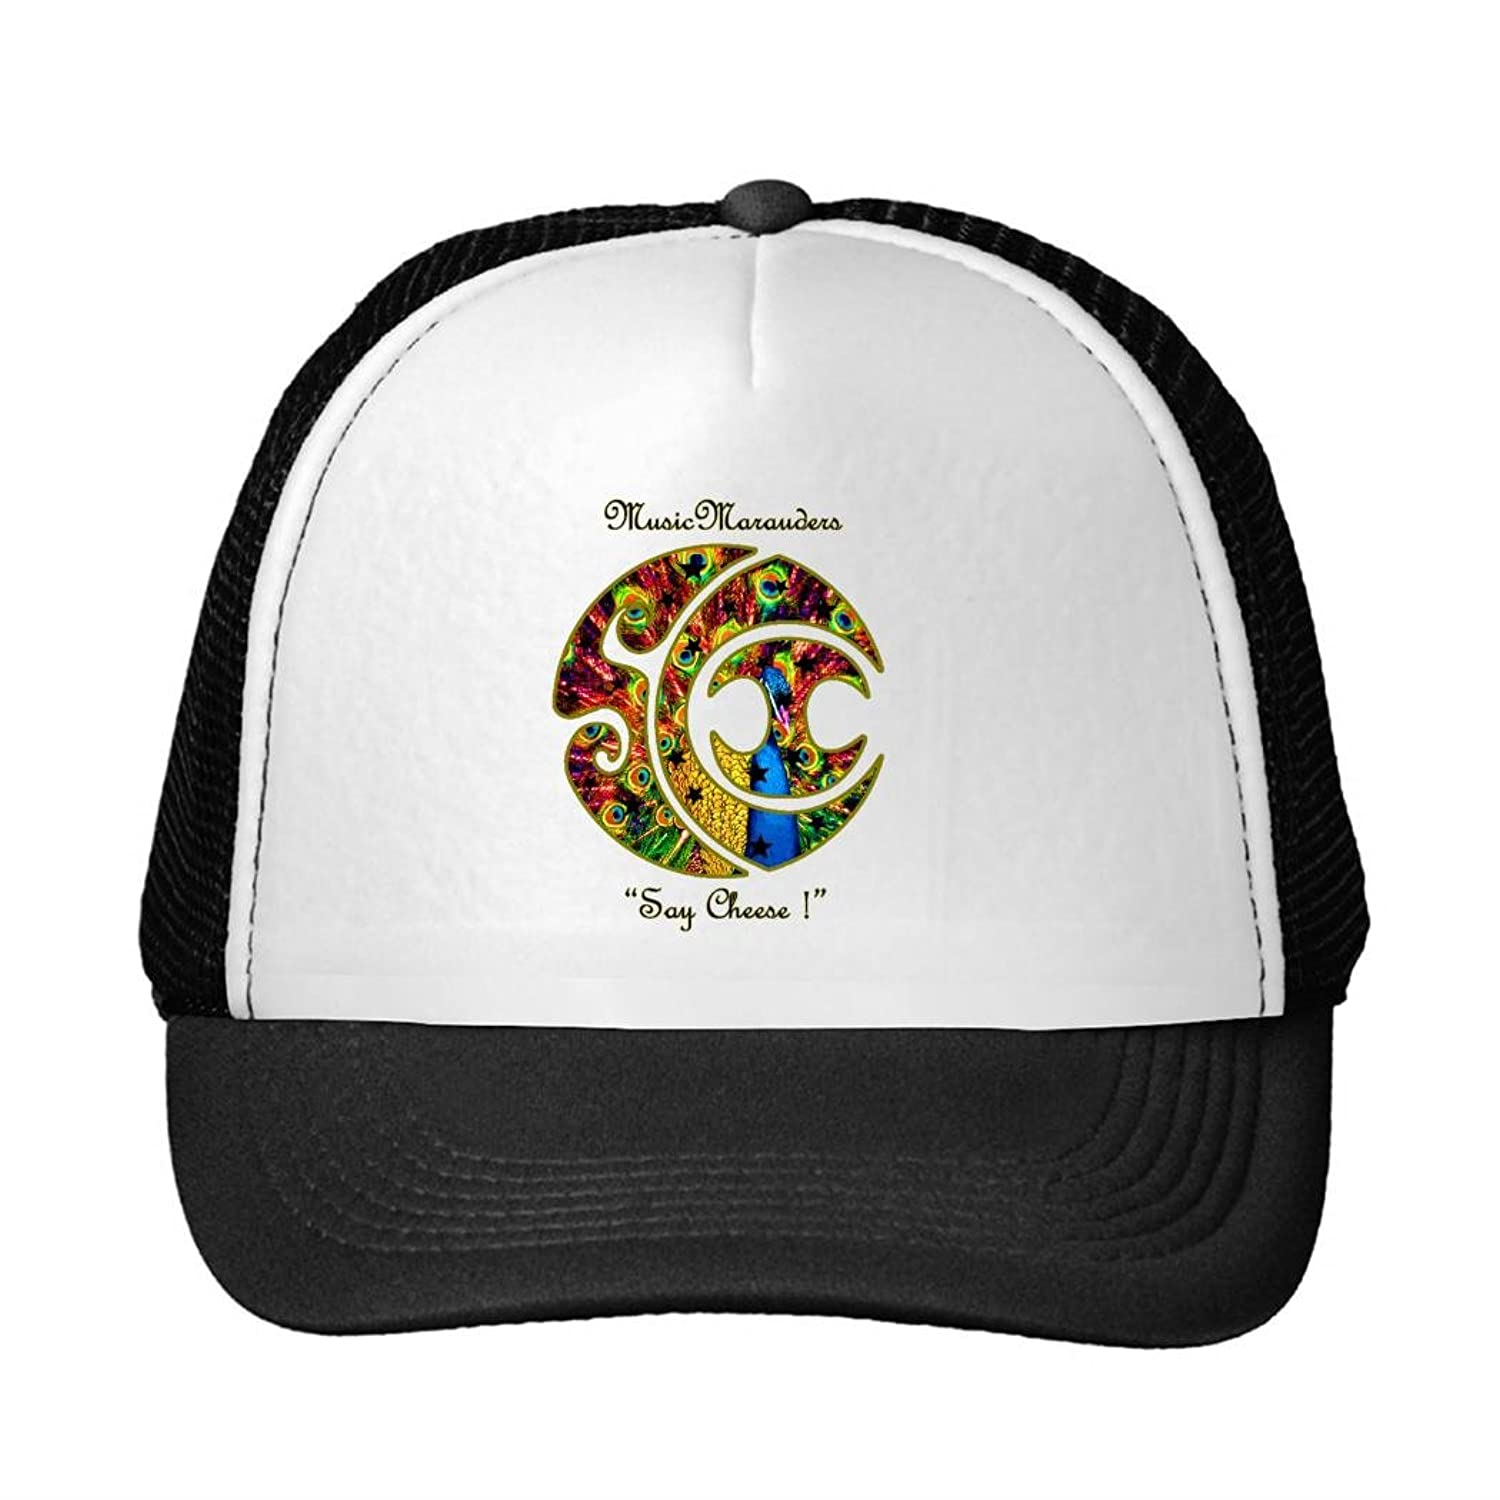 Woman Men Cotton The String Cheese Incident Logo Adjustable Mesh Hats